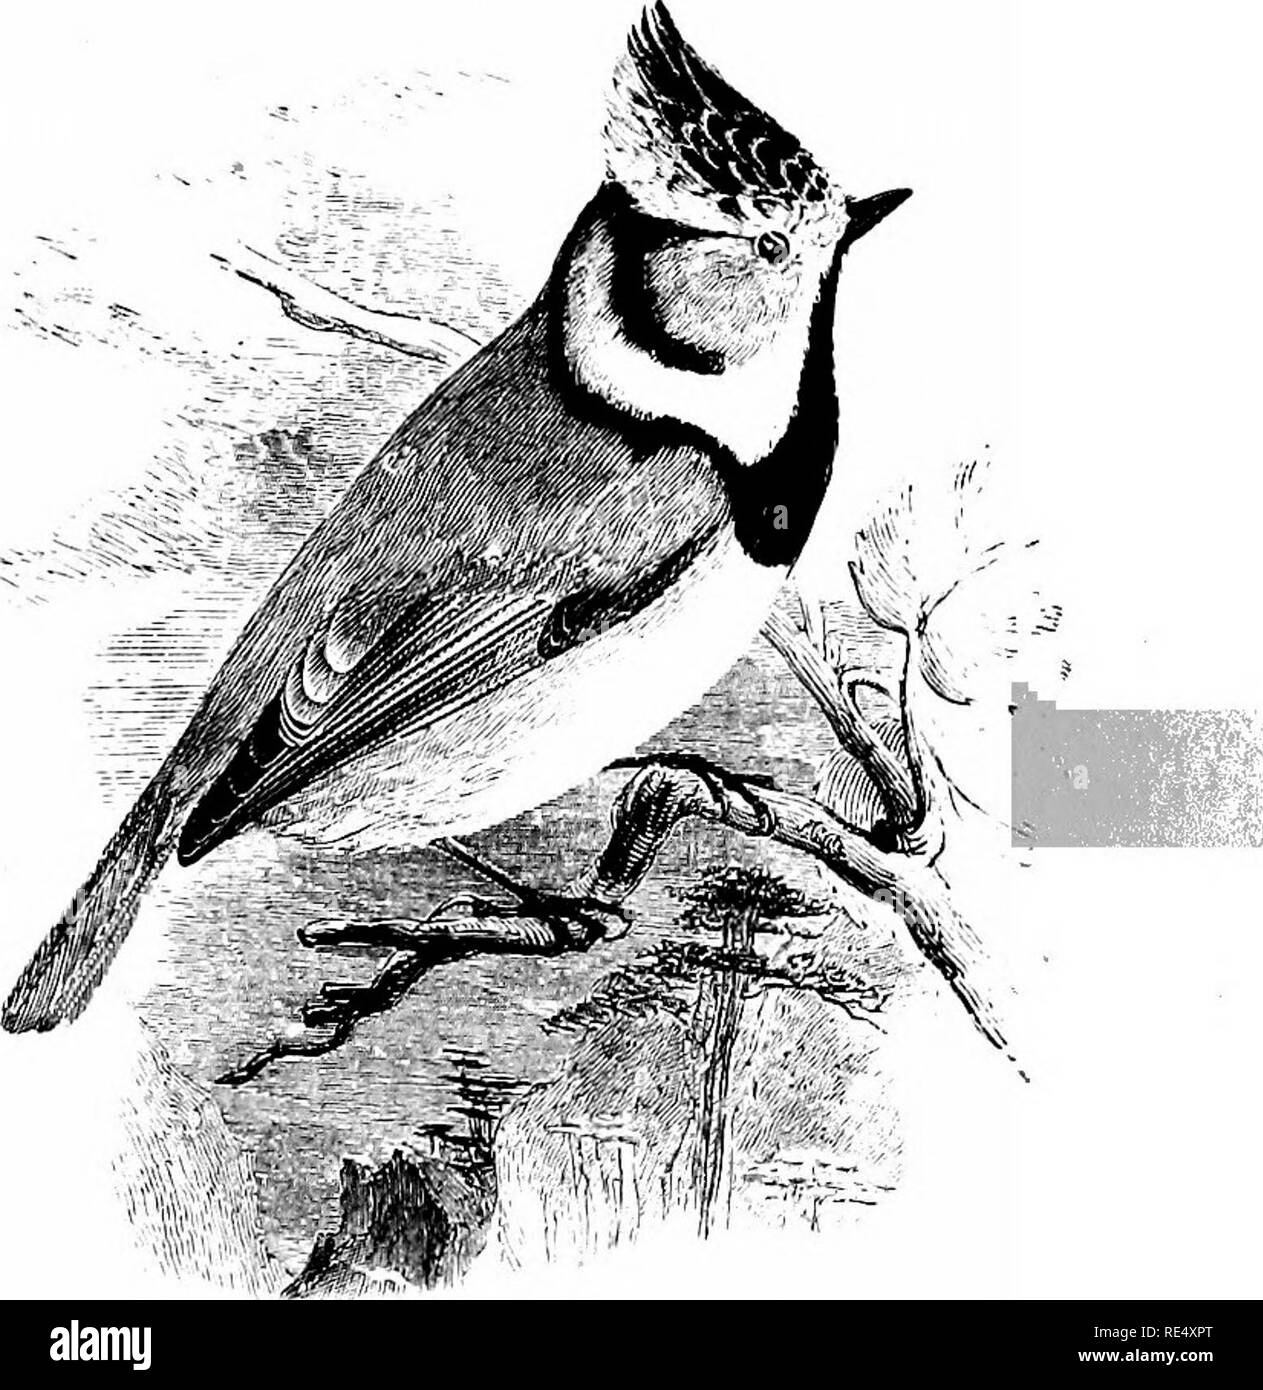 . An illustrated manual of British birds. Birds. parida;.. THE CRESTED TITMOUSE. Parus cristatus, Linnaeus. It seems probable that the Crested Titmouse has been for ages a resident species in the old forests of Scotland, which now survive principally in the valley of the Spey. Probably the bird does not breed at the present time outside Strathspey. It has occurred in Perthshire in winter, but, as a rule, it wanders little from its usual haunts, and one recorded example in Argyll and another near Dumbarton, appear to be the only instances in Southern Scotland. In England few of the cases on rec - Stock Image